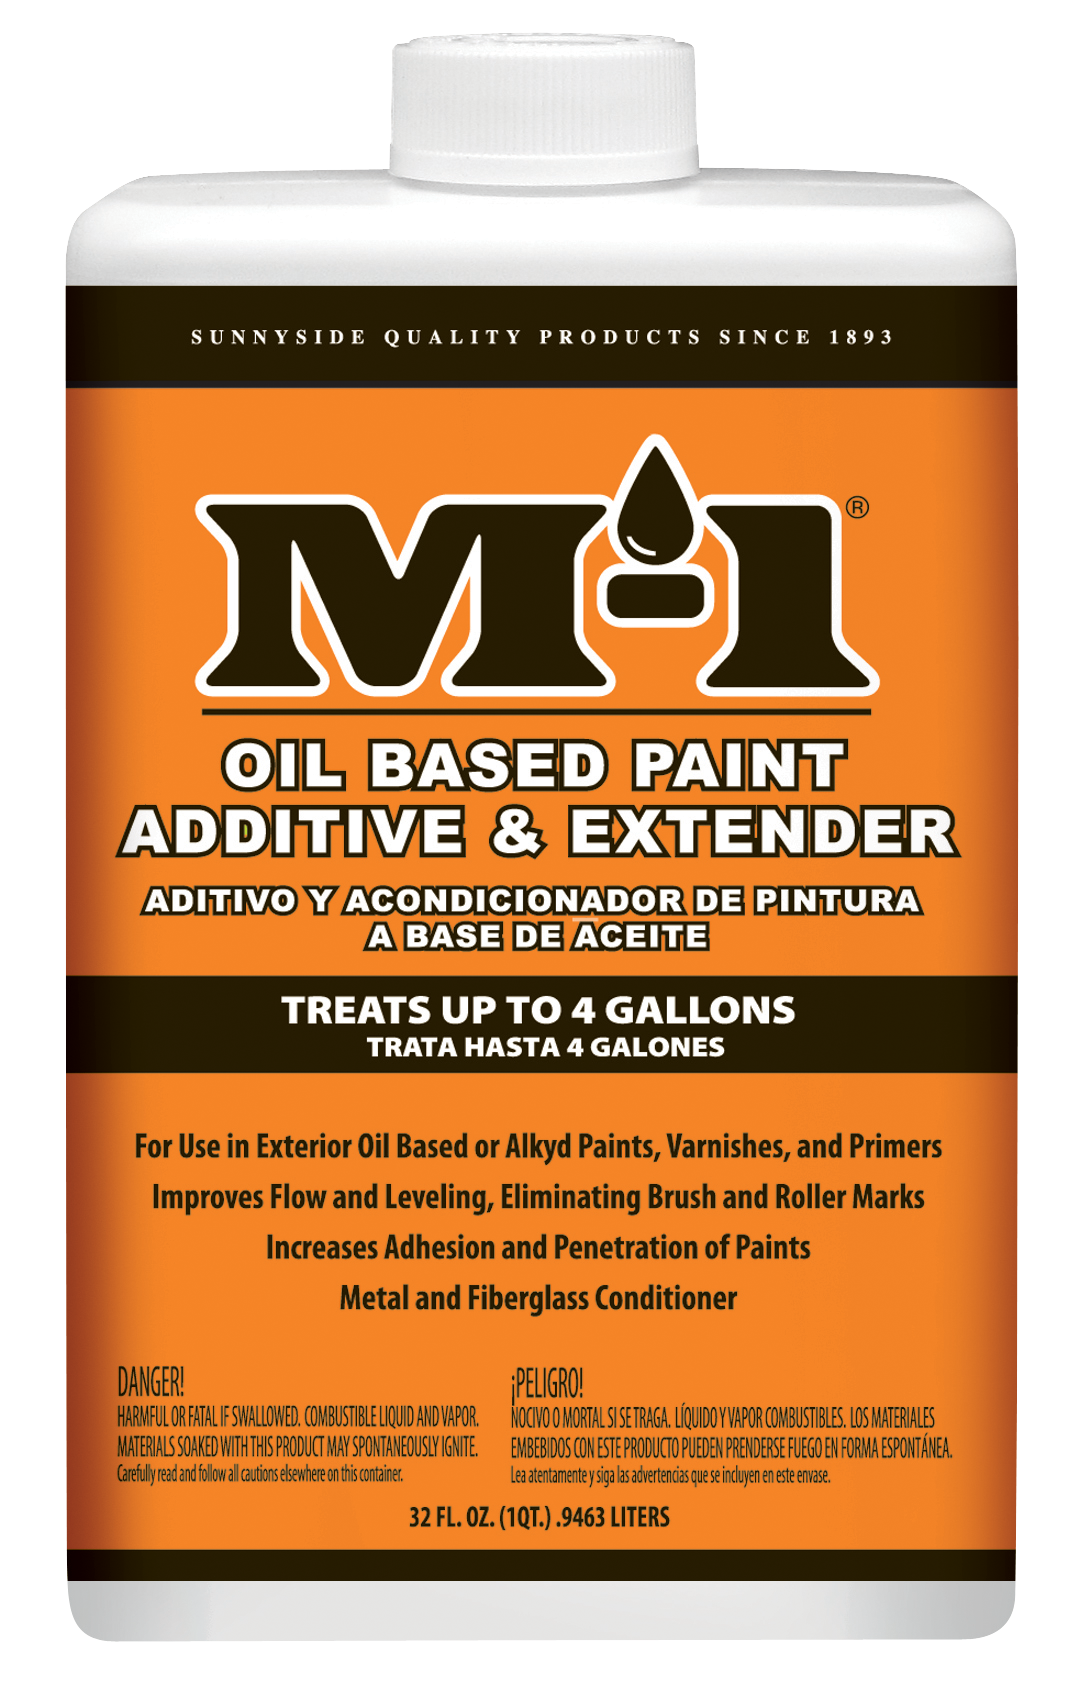 M-1 OIL BASED PAINT ADDITIVE & EXTENDER Product Image